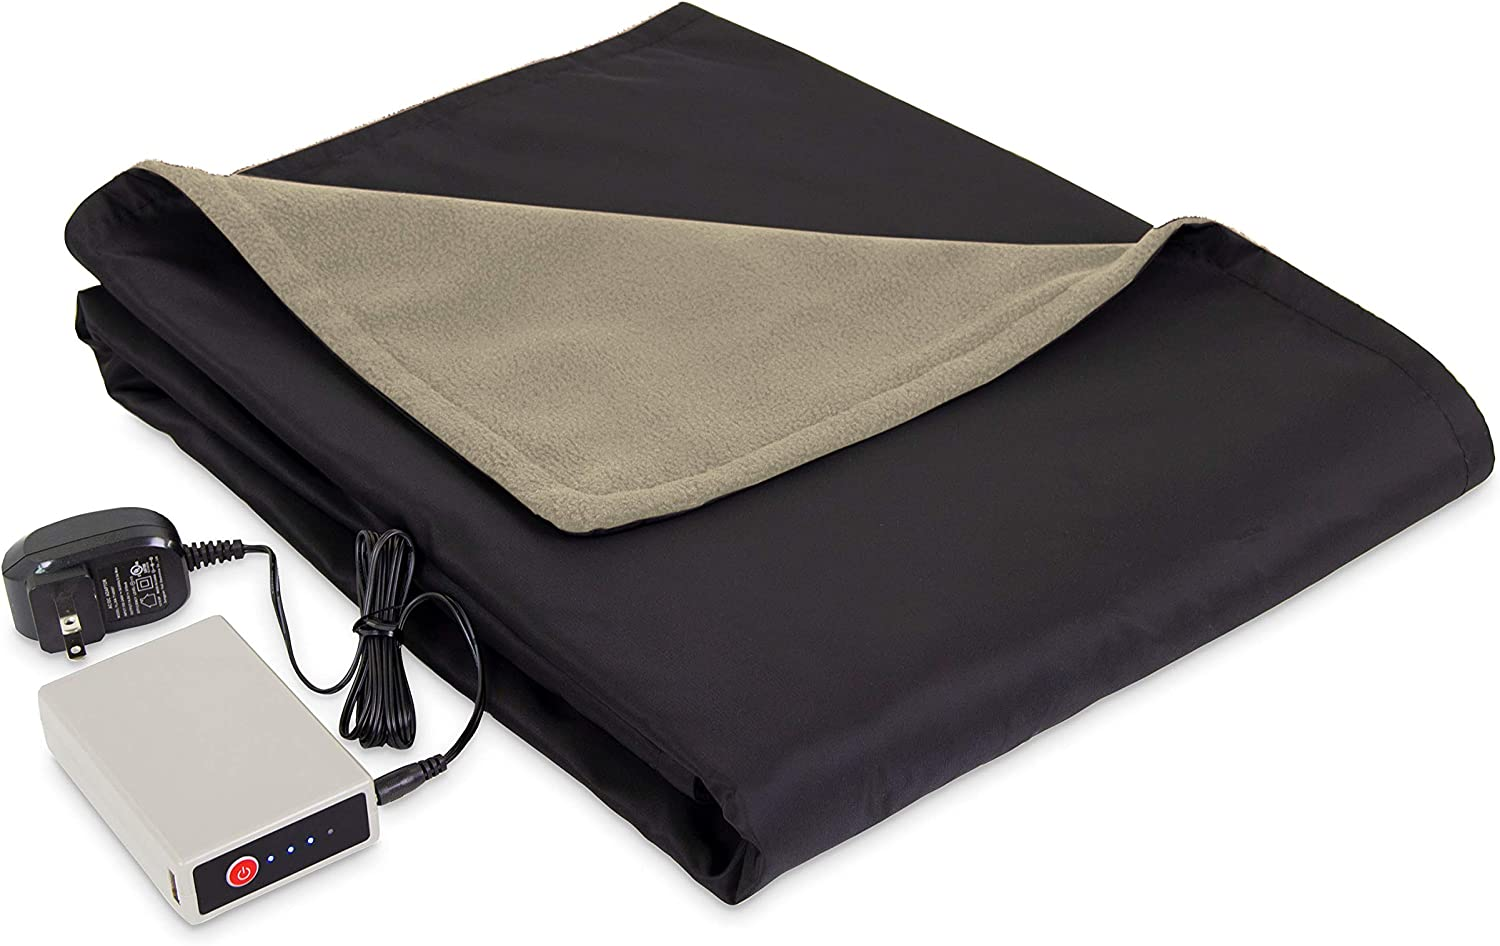 Eddie Bauer Portable Heated Electric Throw Blanket - Rechargeable Lithium Battery with USB Port - Water Resistant Weather Smart Fleece for Travel, Camping, and Outdoor Use, Light Khaki/Black